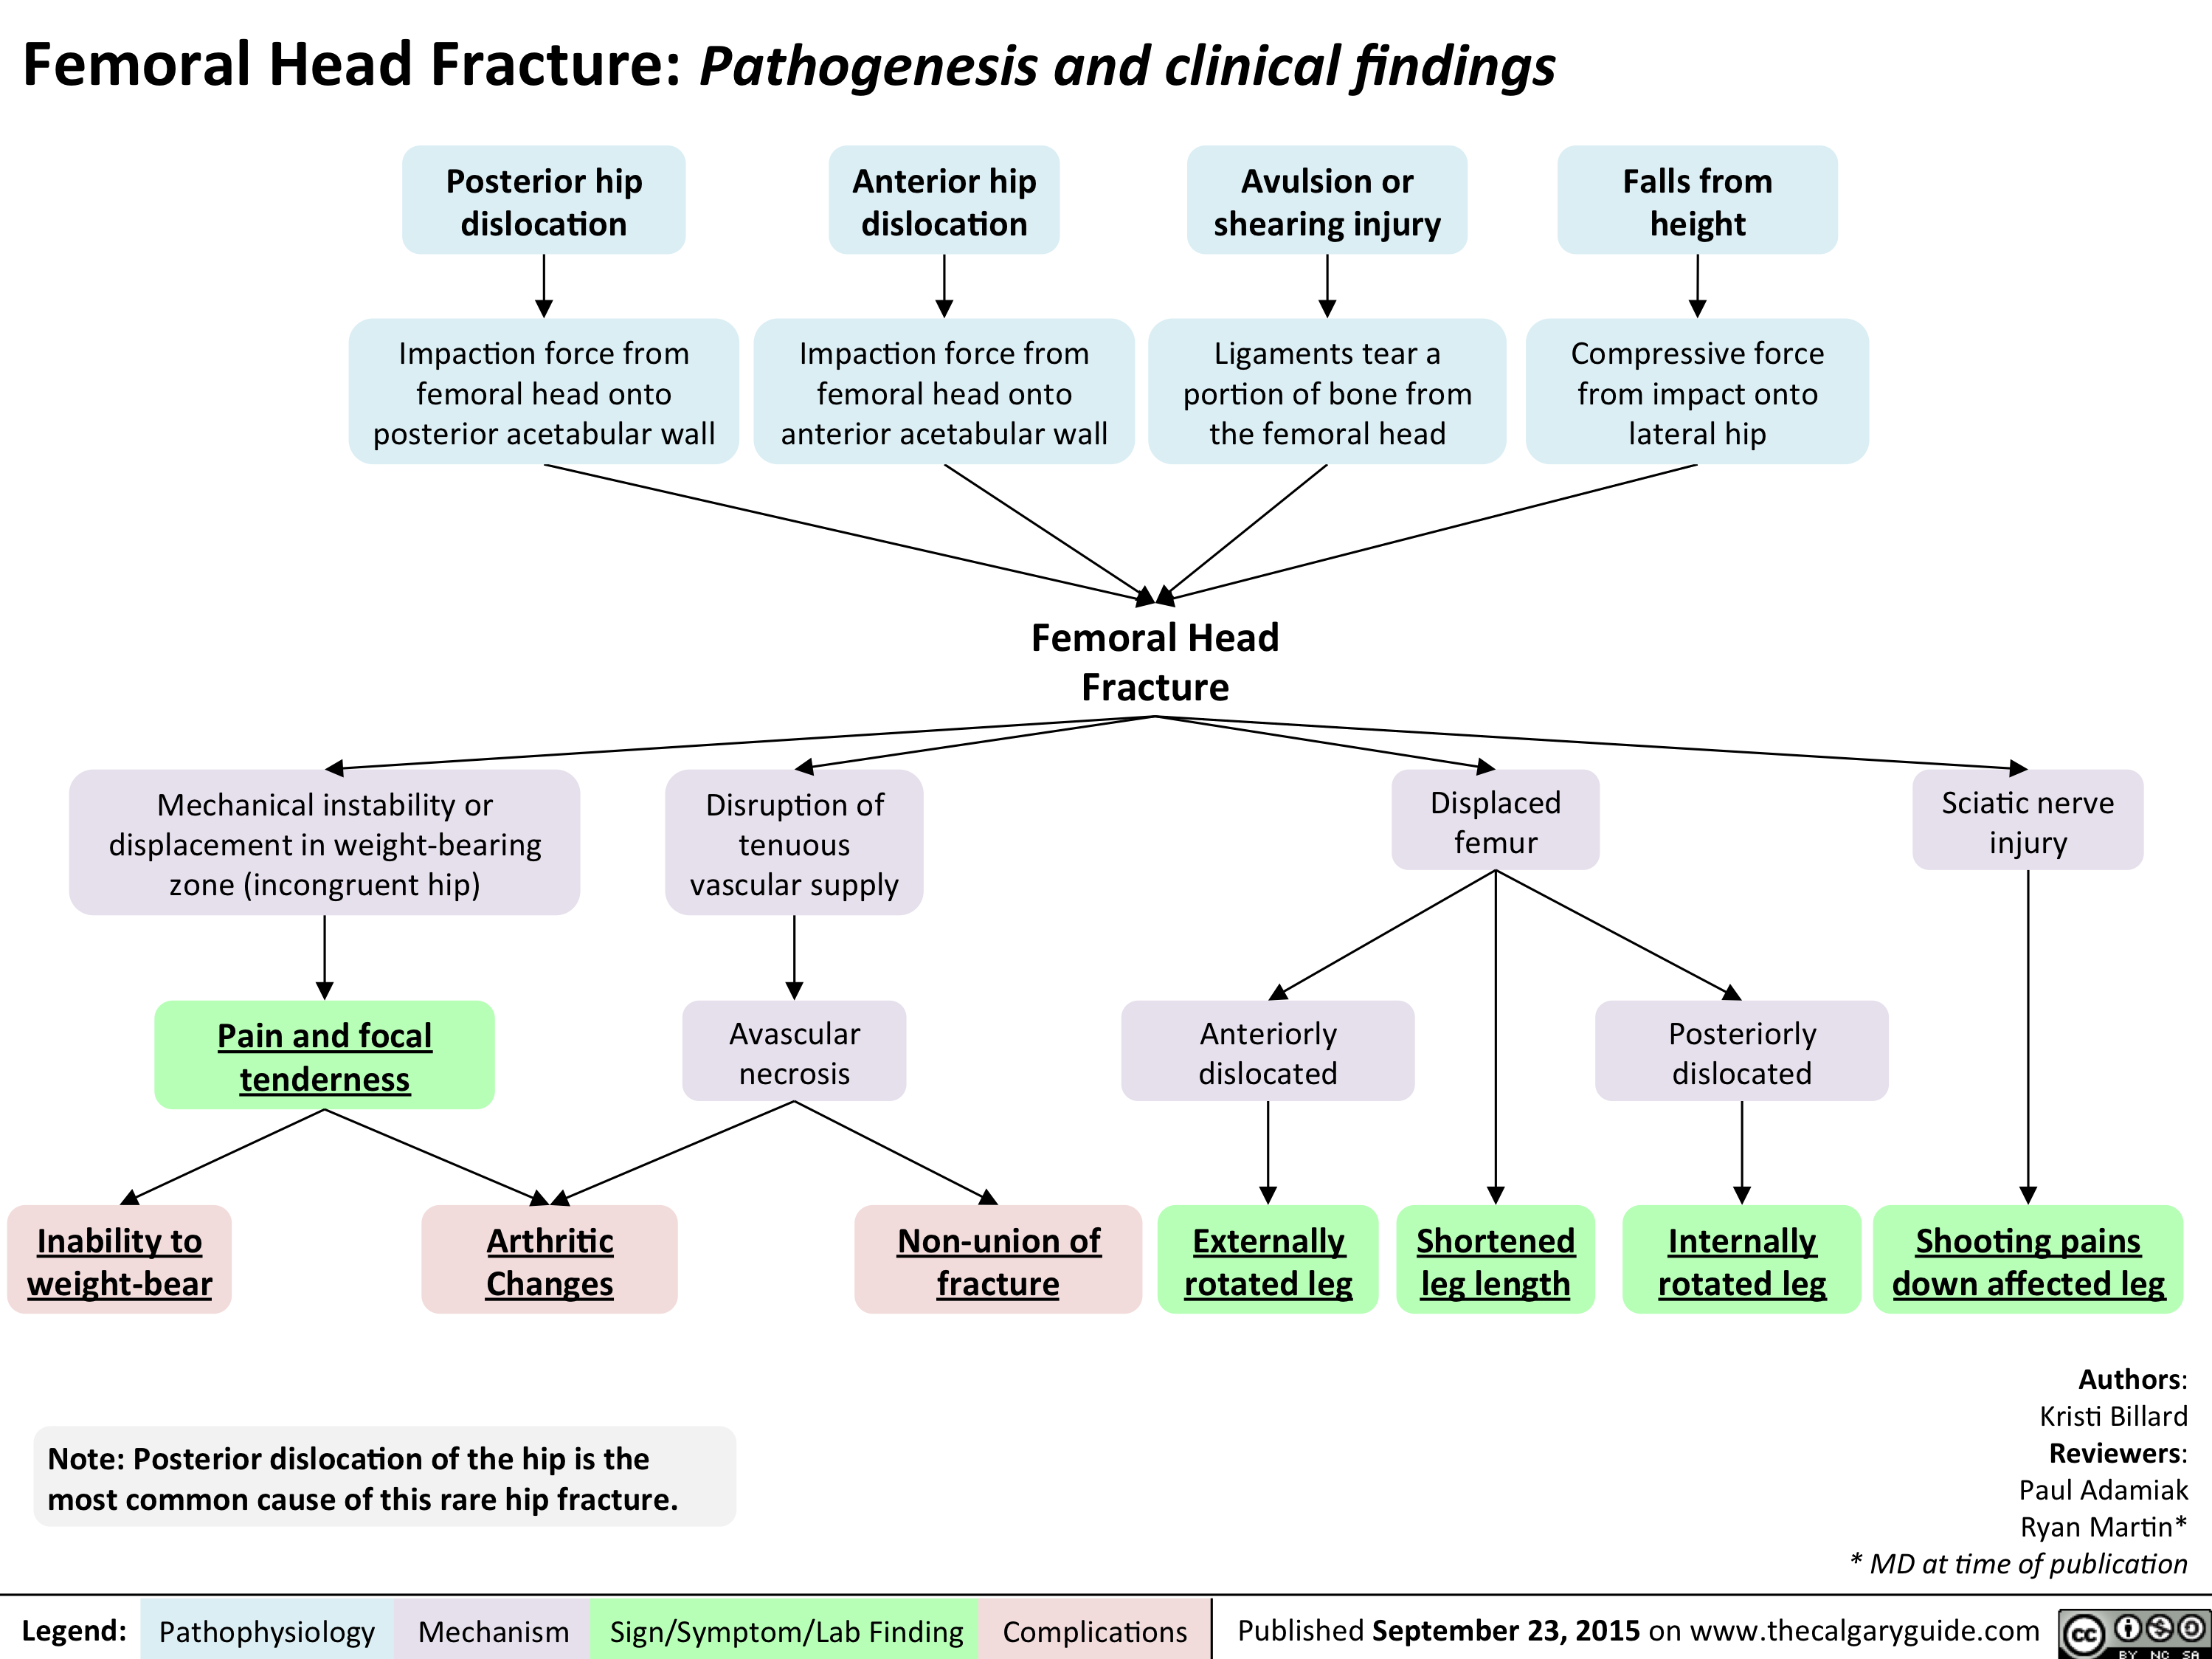 Femoral Head Fracture Pathogenesis and clinical findings